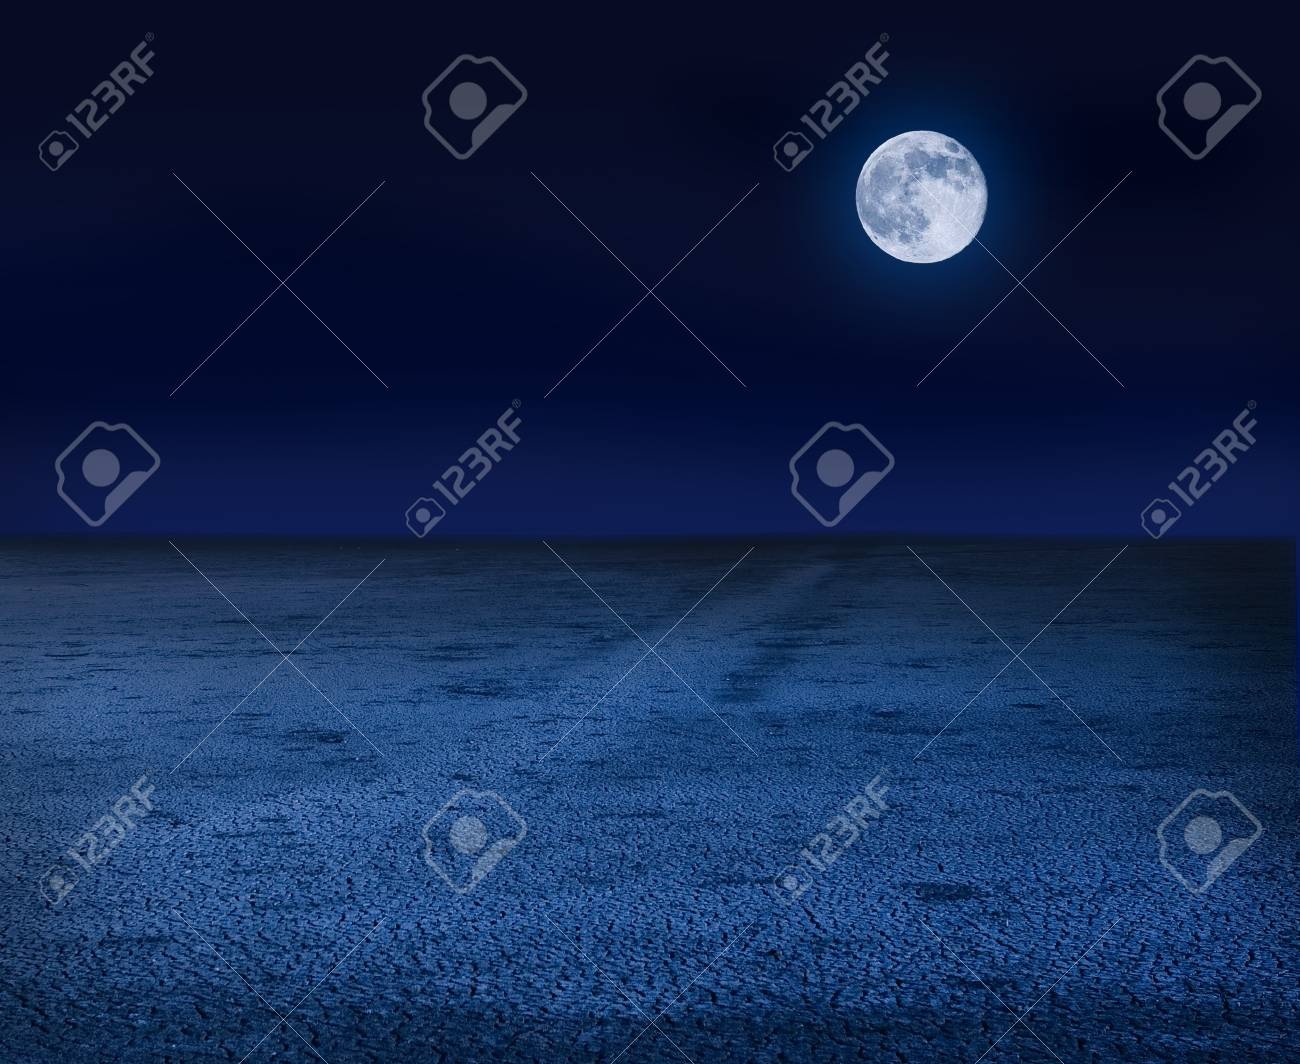 Moon over dry land - 85252360